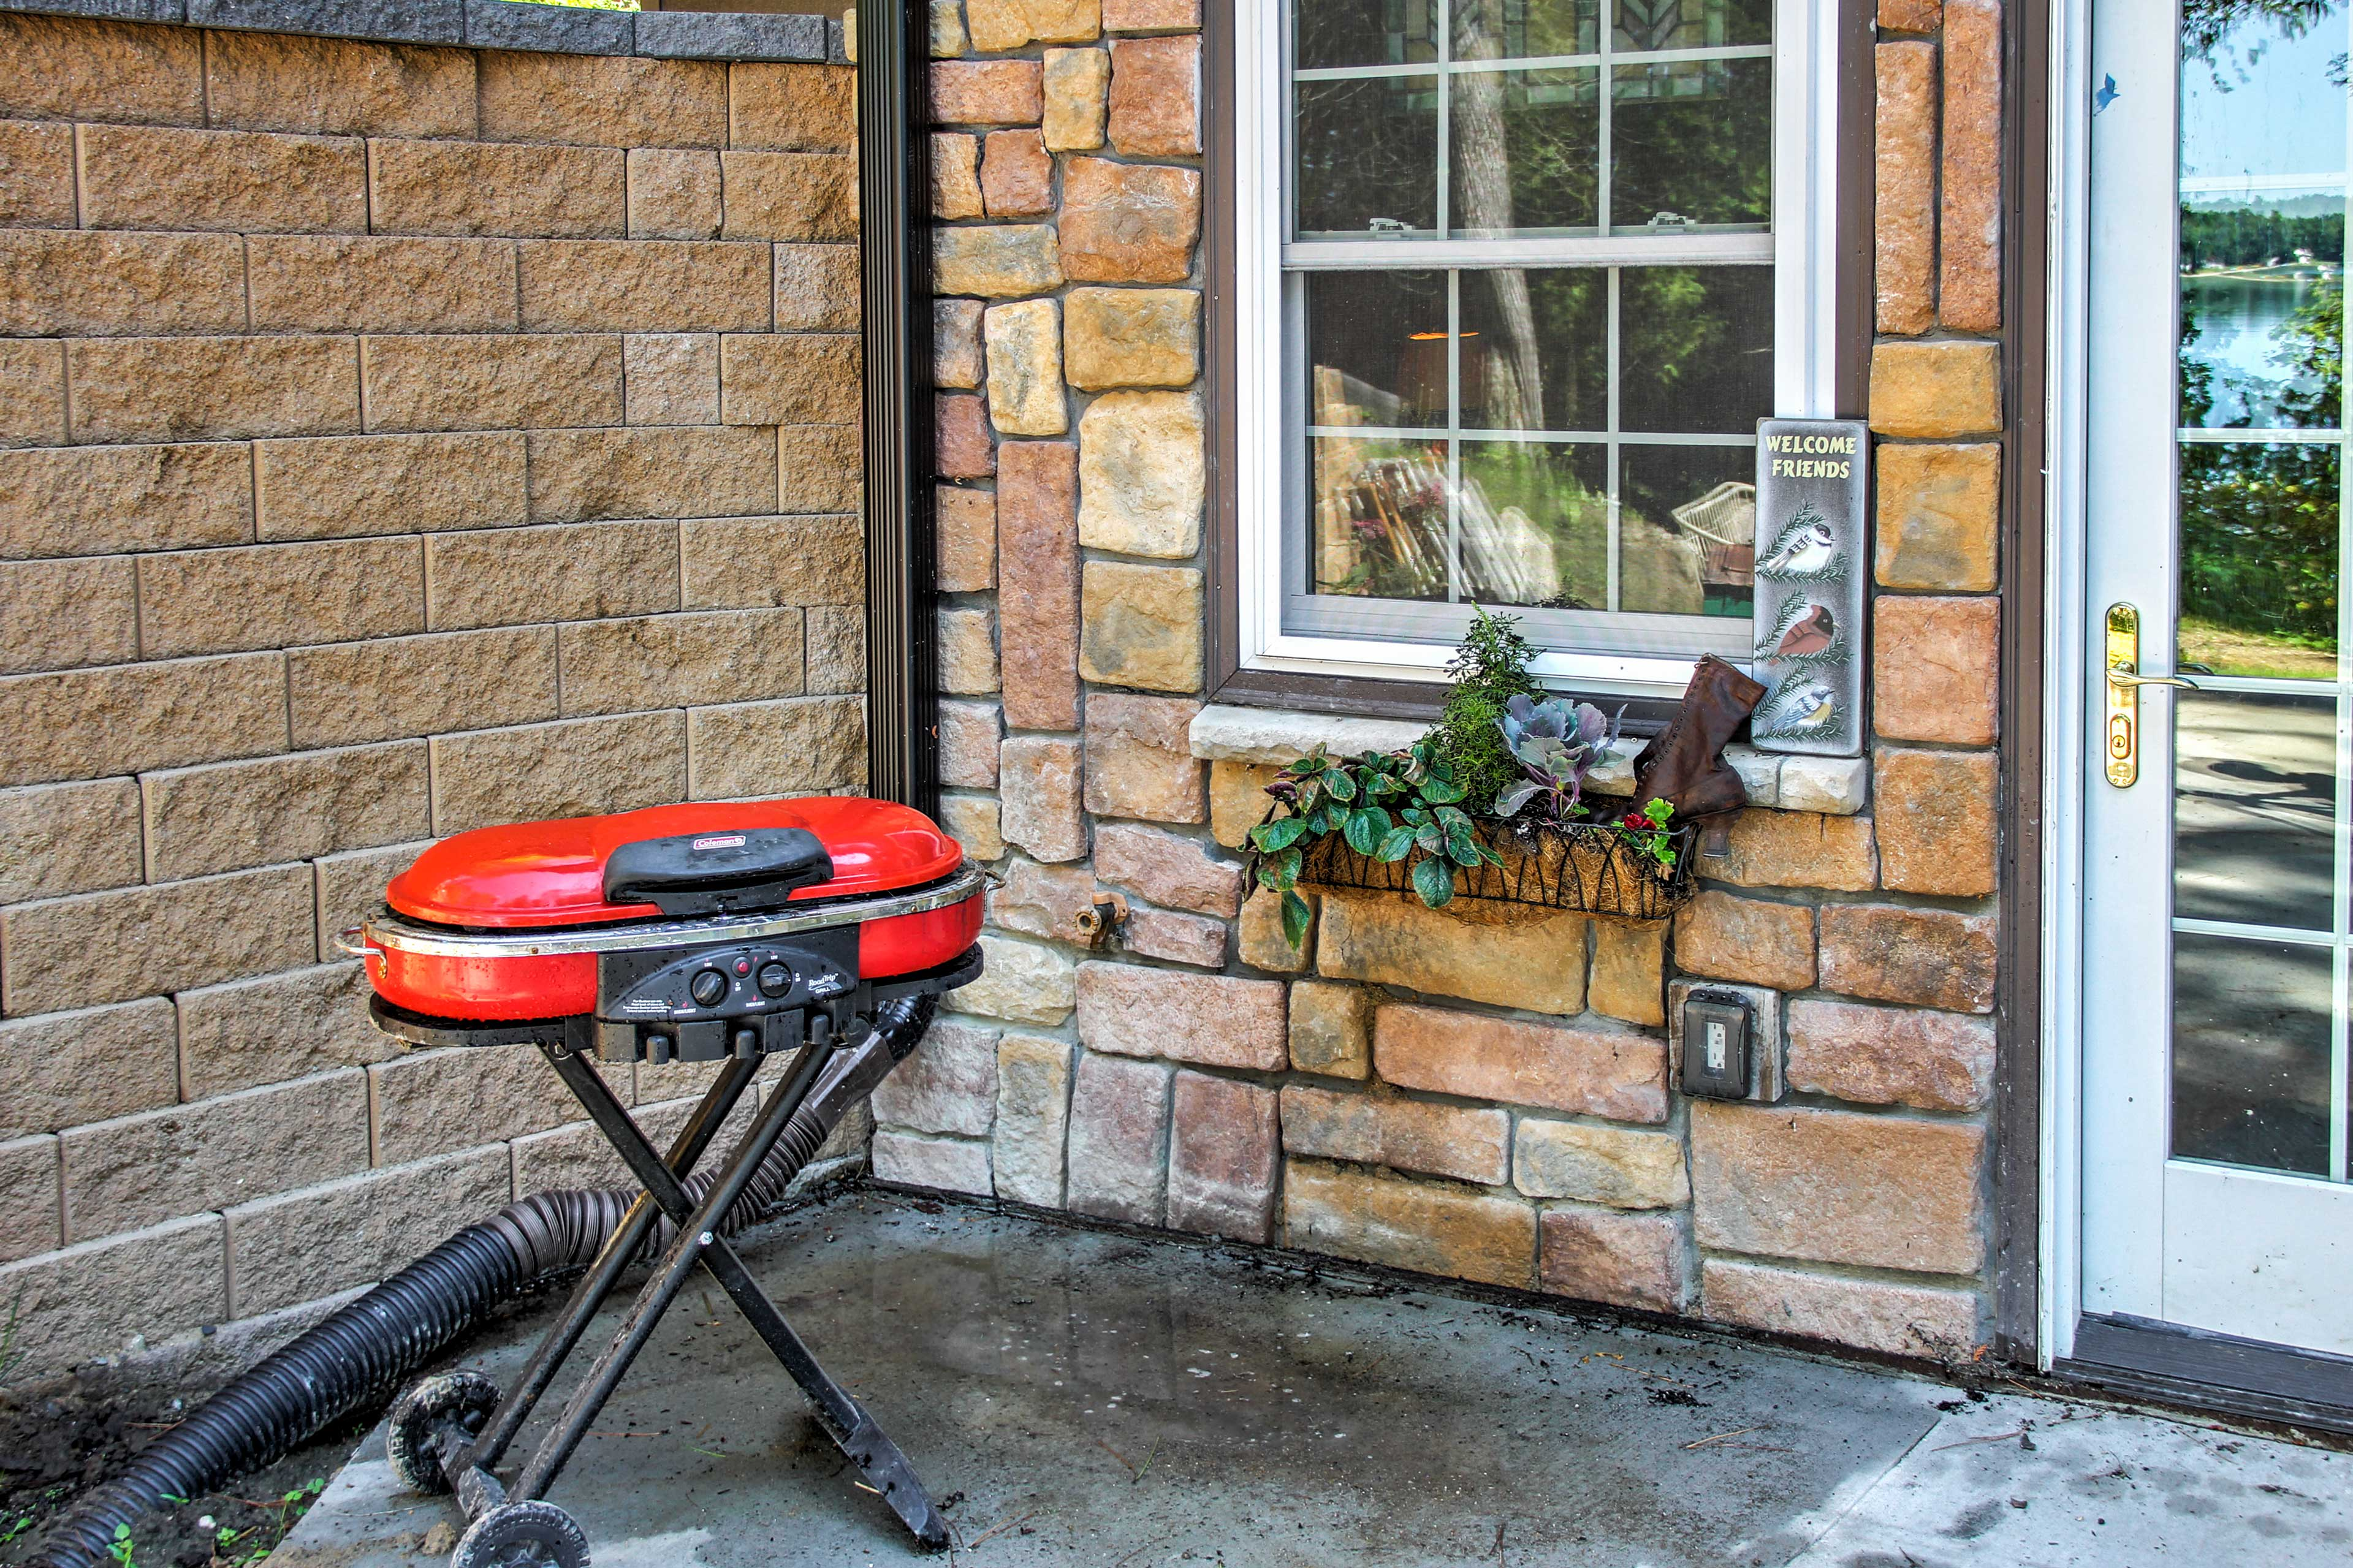 Fire up the grill for a family cookout in the backyard.